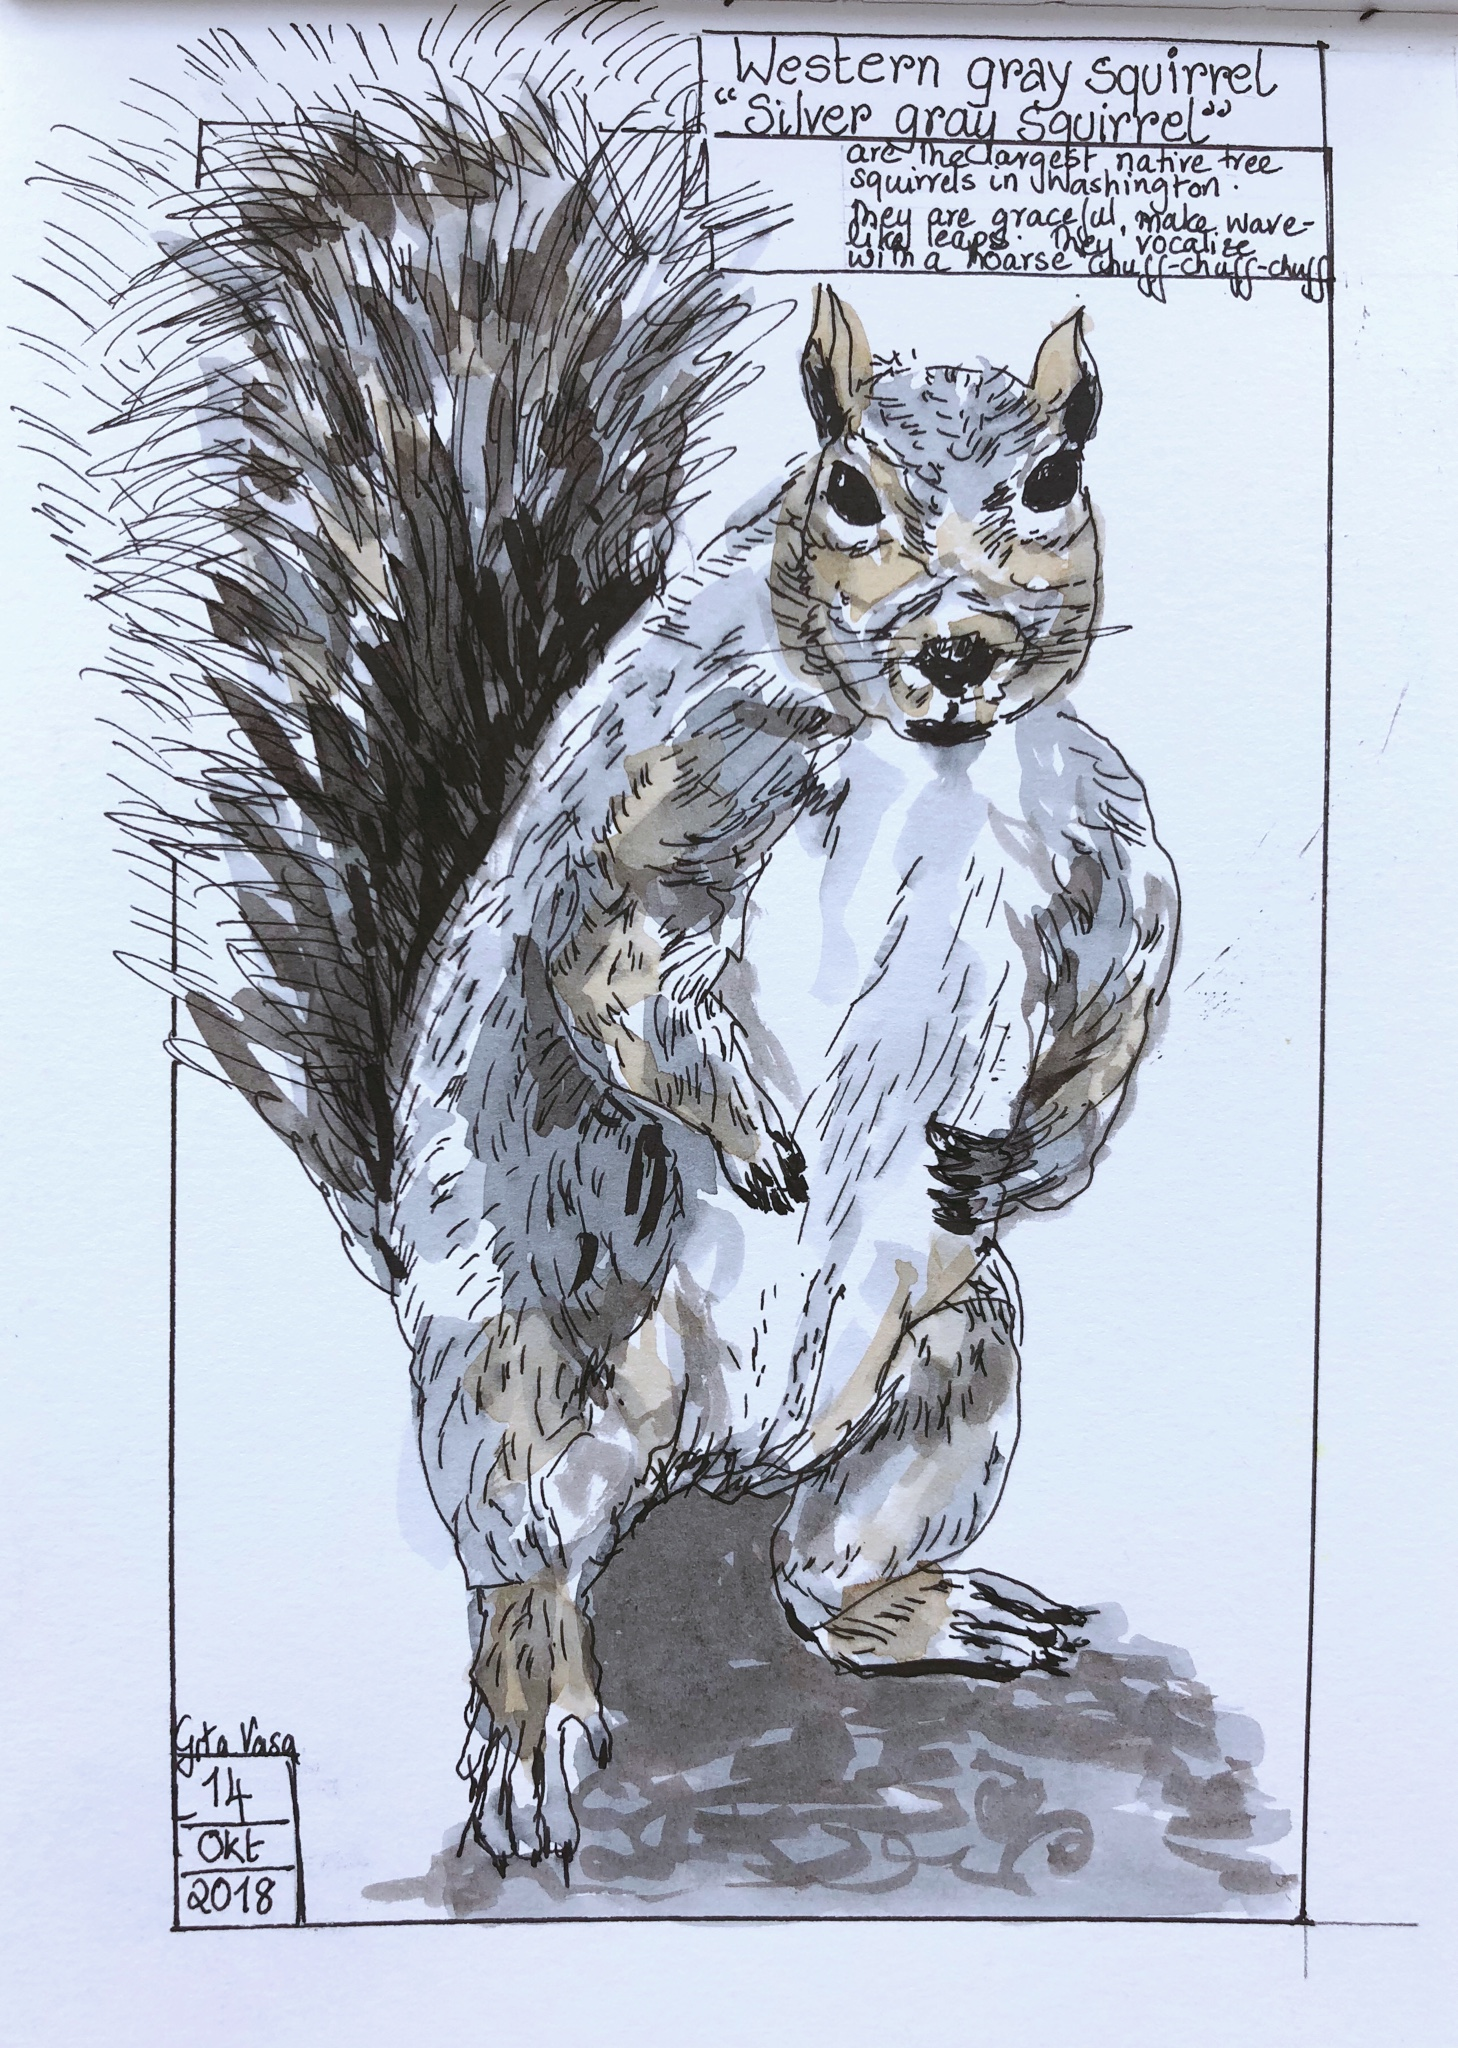 squirril in Washington - pen and ink wash